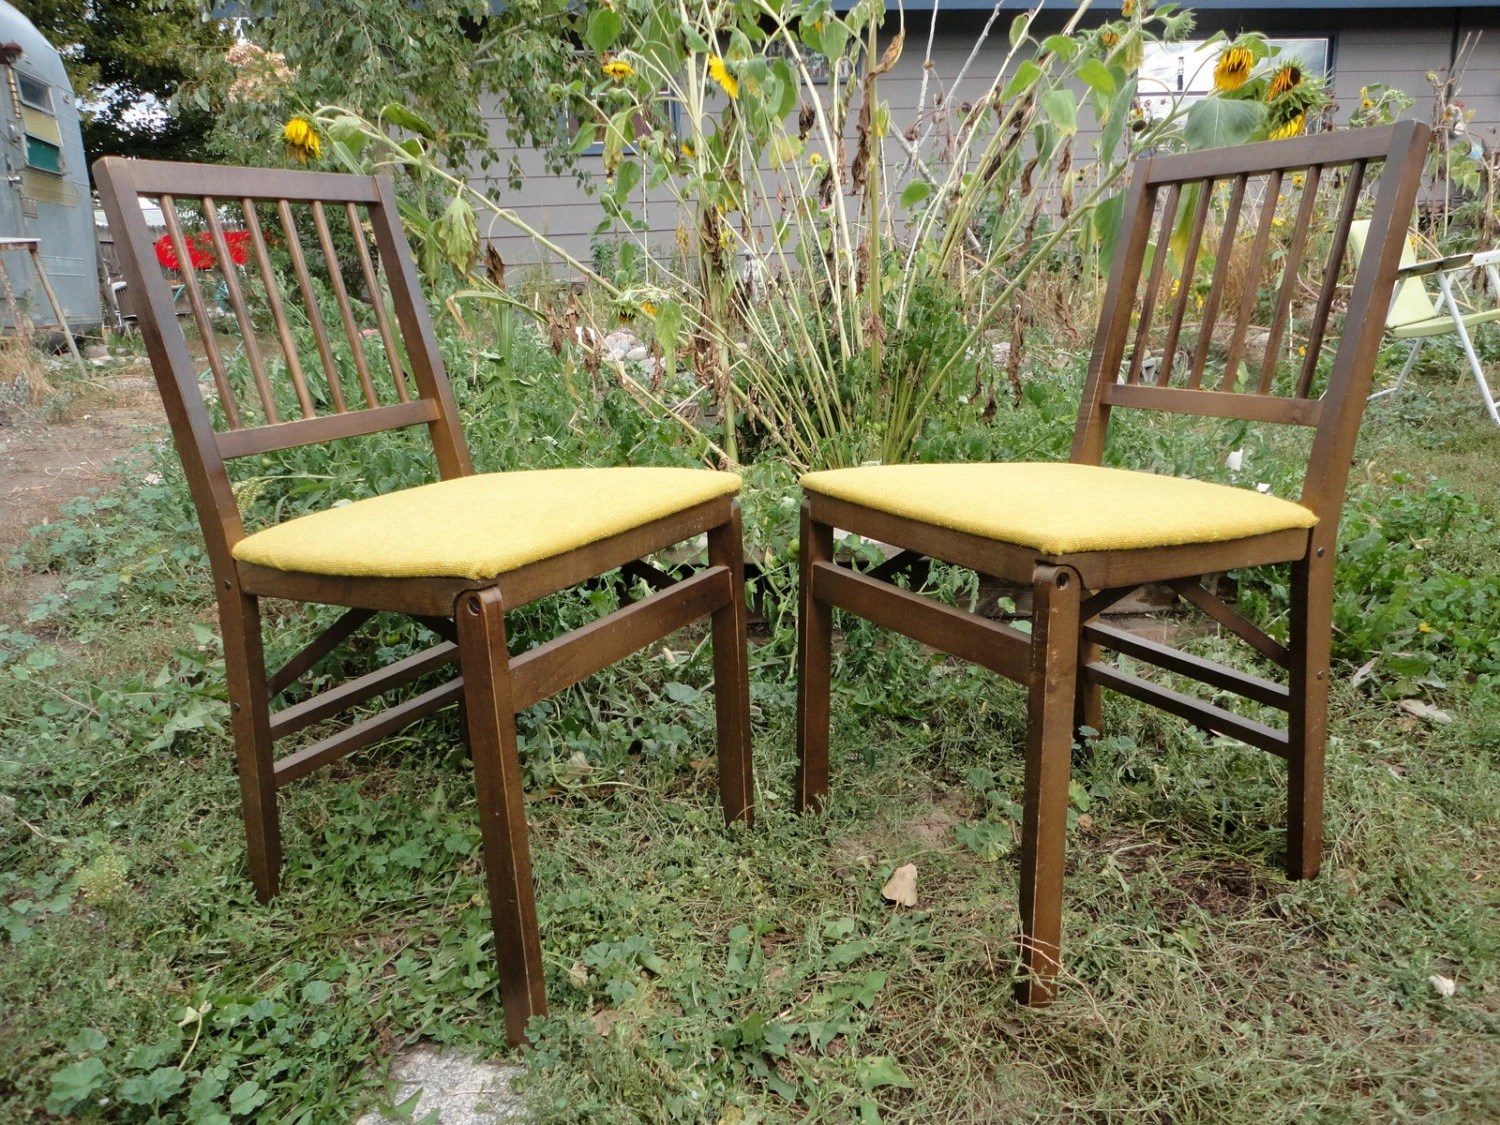 Stakmore Folding Chair 2 Stakmore Folding Chairs Vintage 50s 60s By